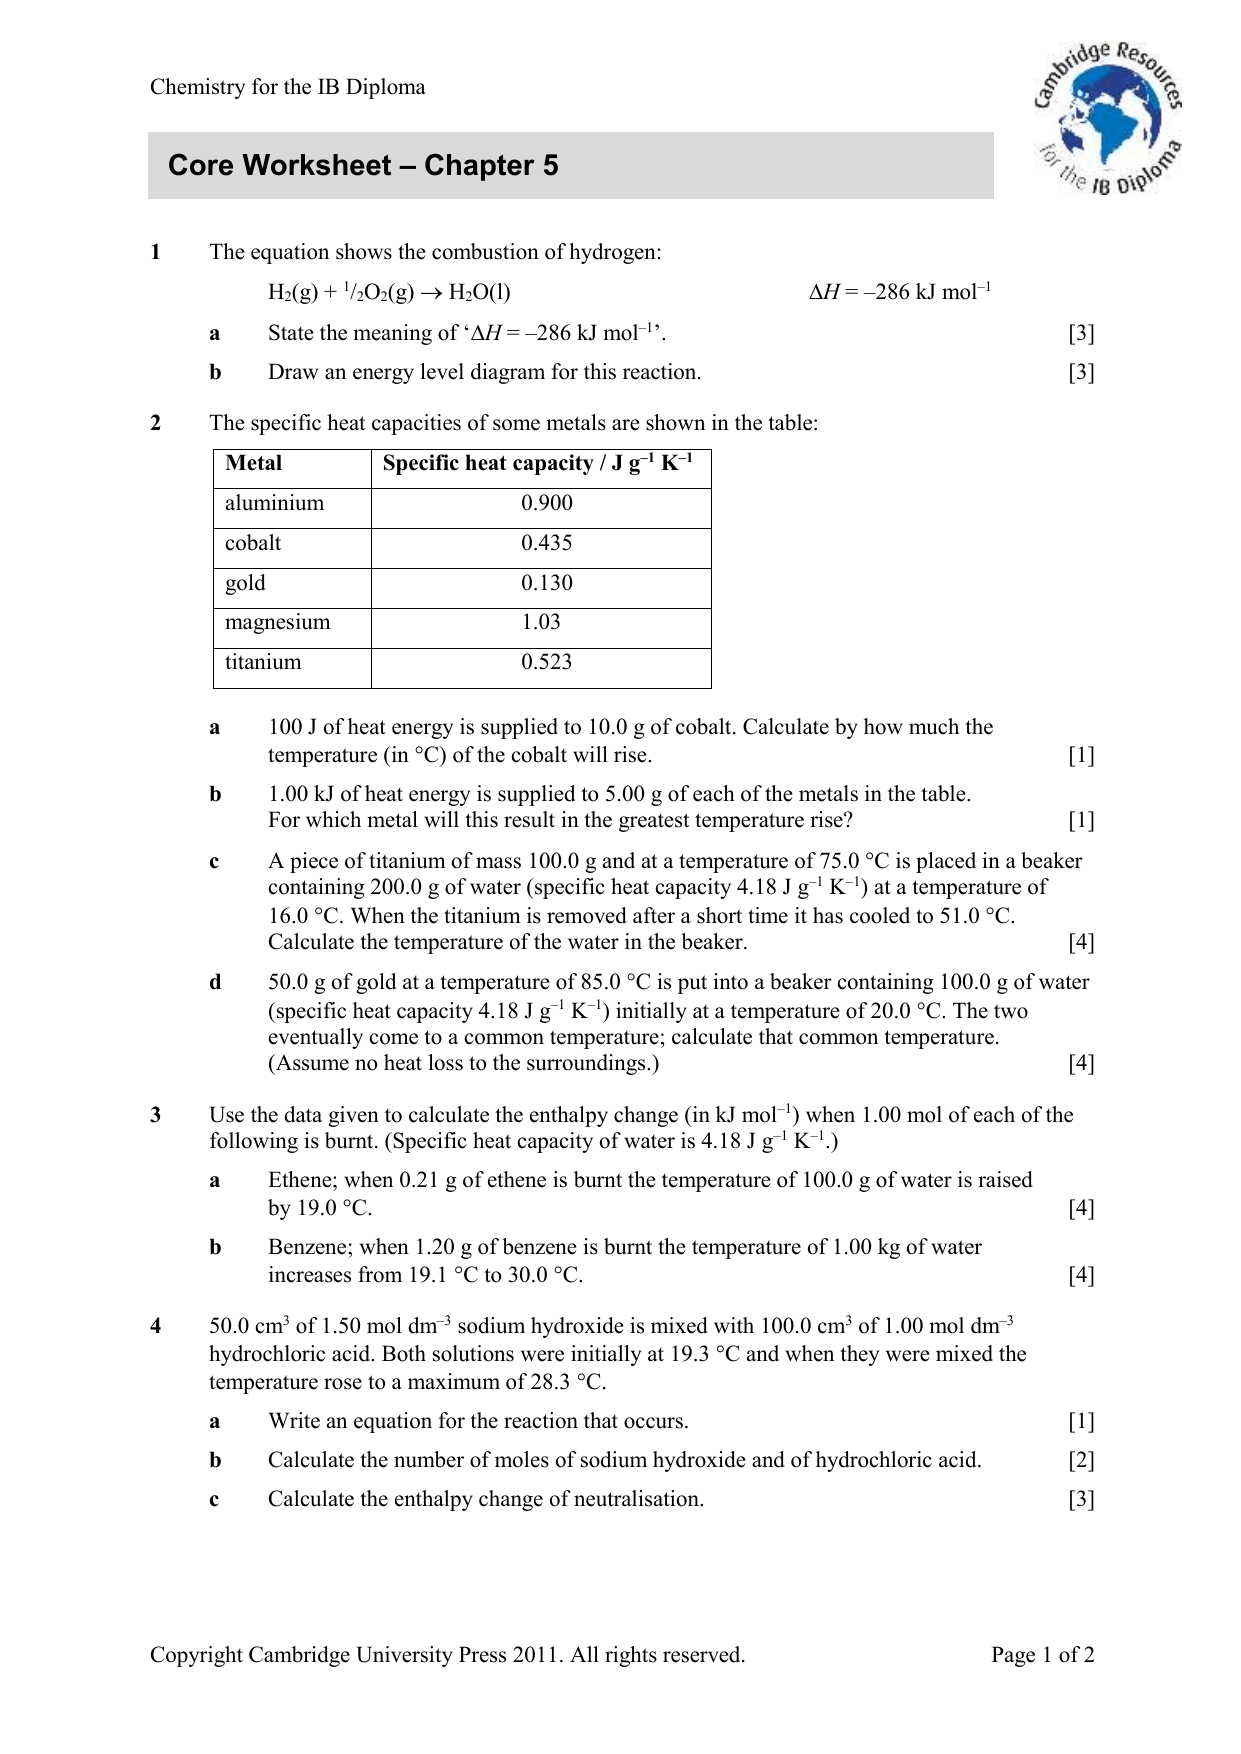 Core Worksheet Chapter 5